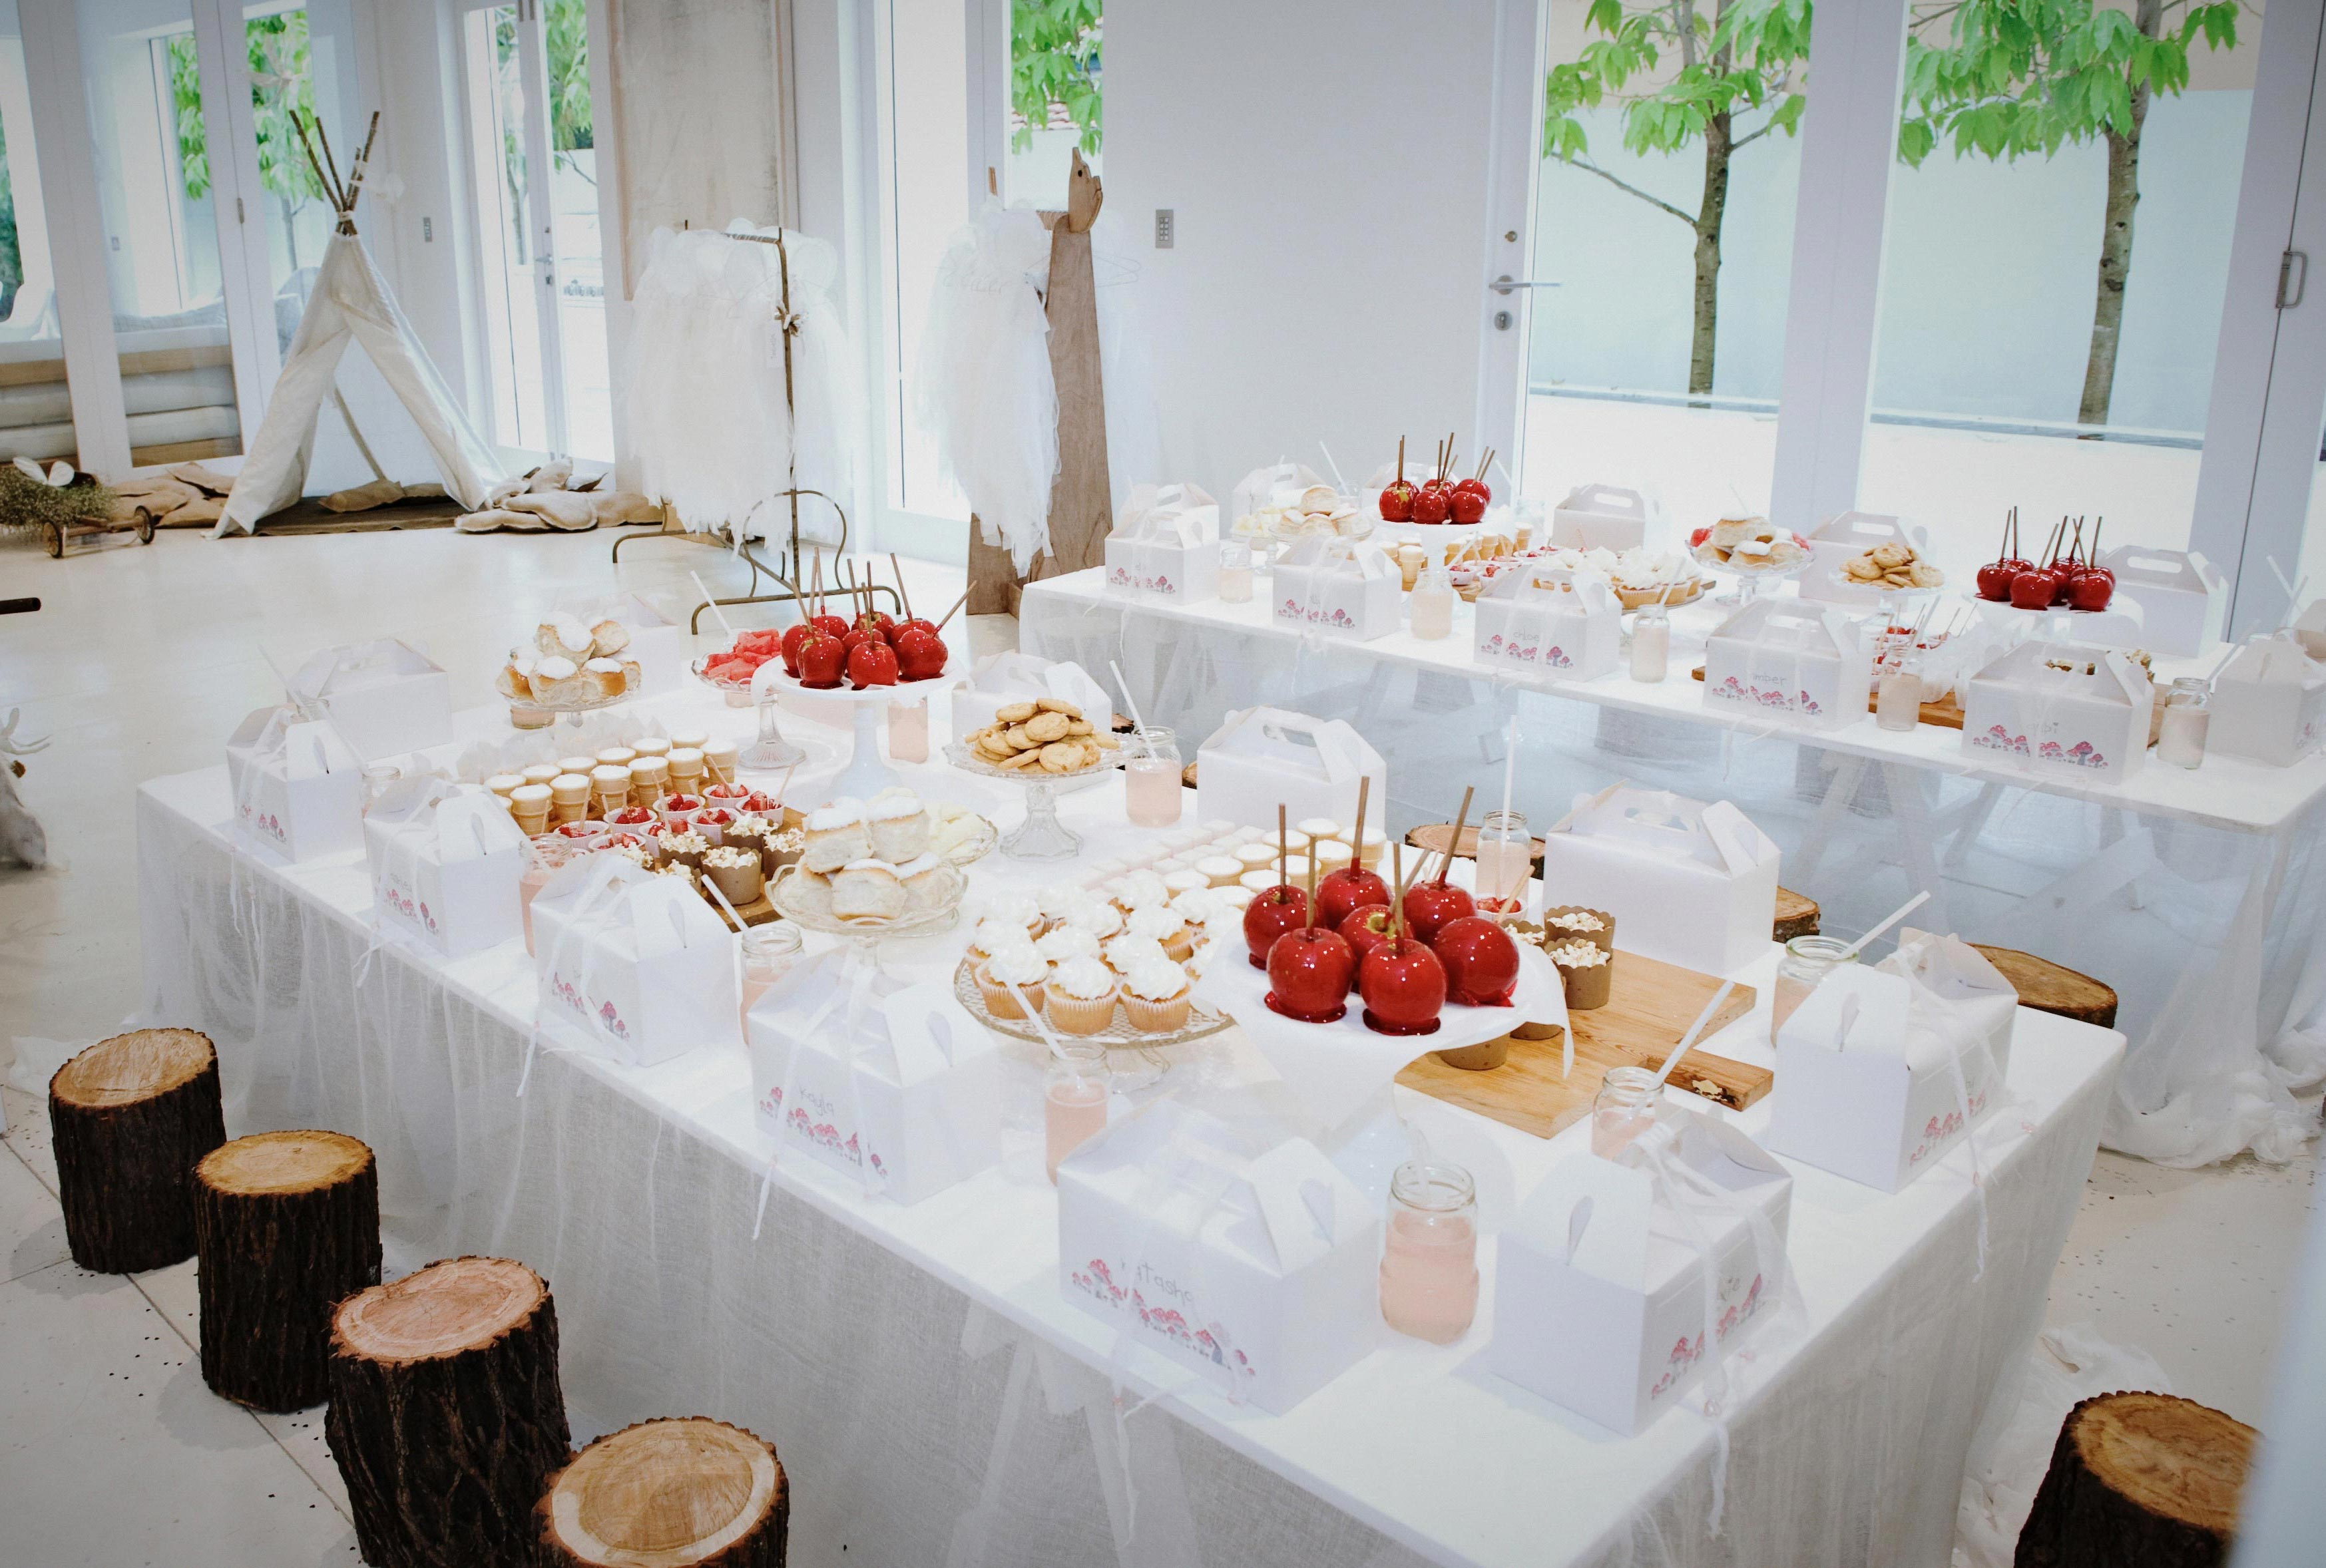 Stylist Romi Weinberg on how to throw a fairy party